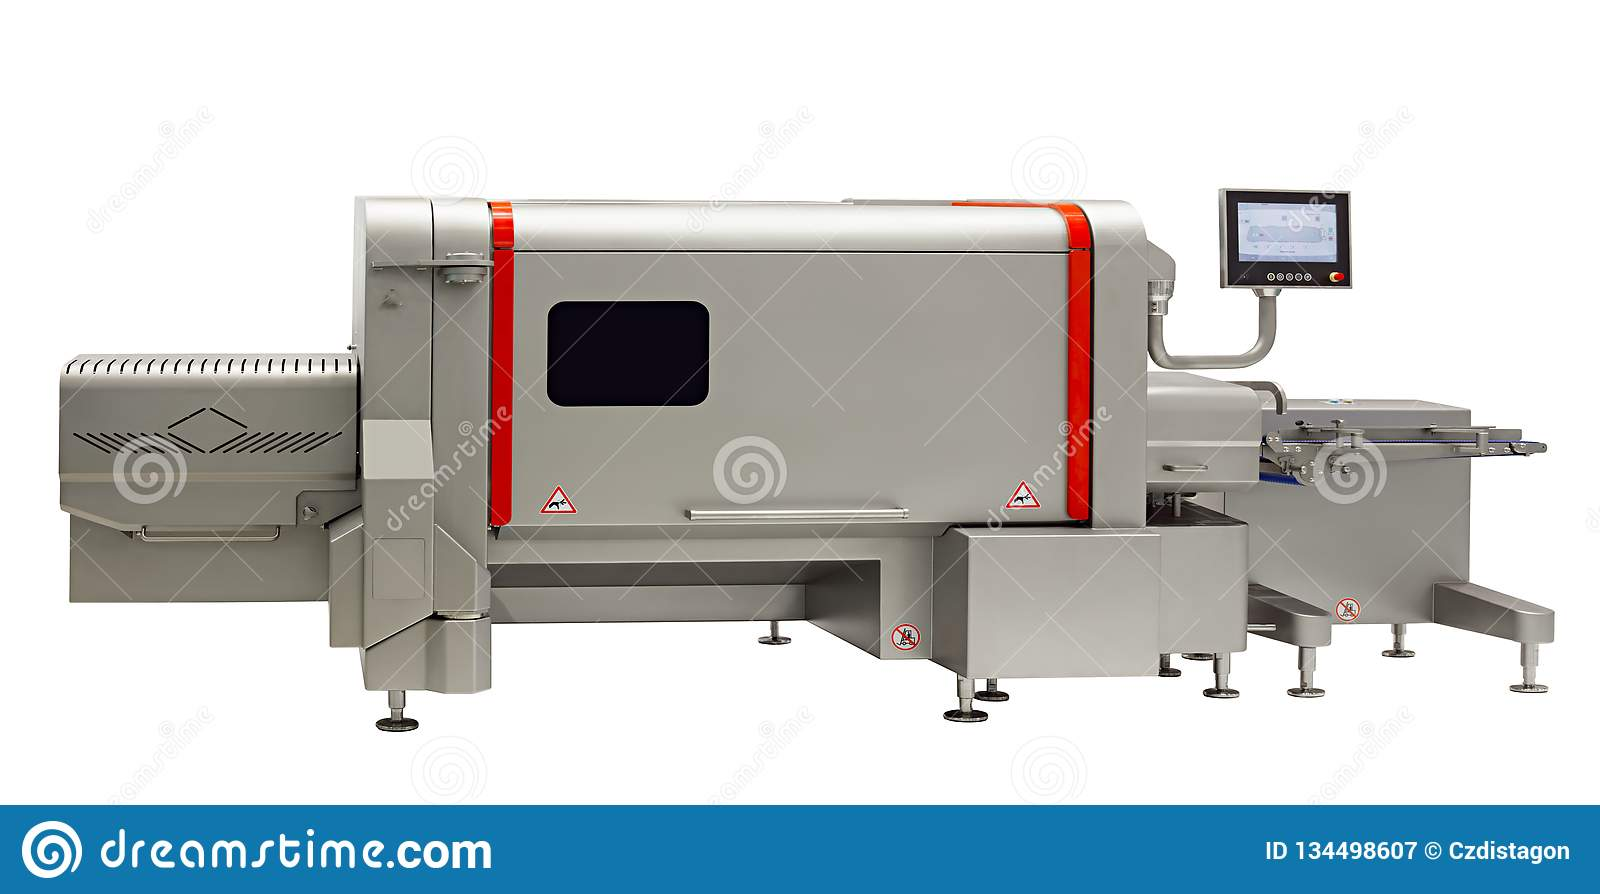 Industrial machine of food industry, production line in food factory line conveyor machine isolated on white background